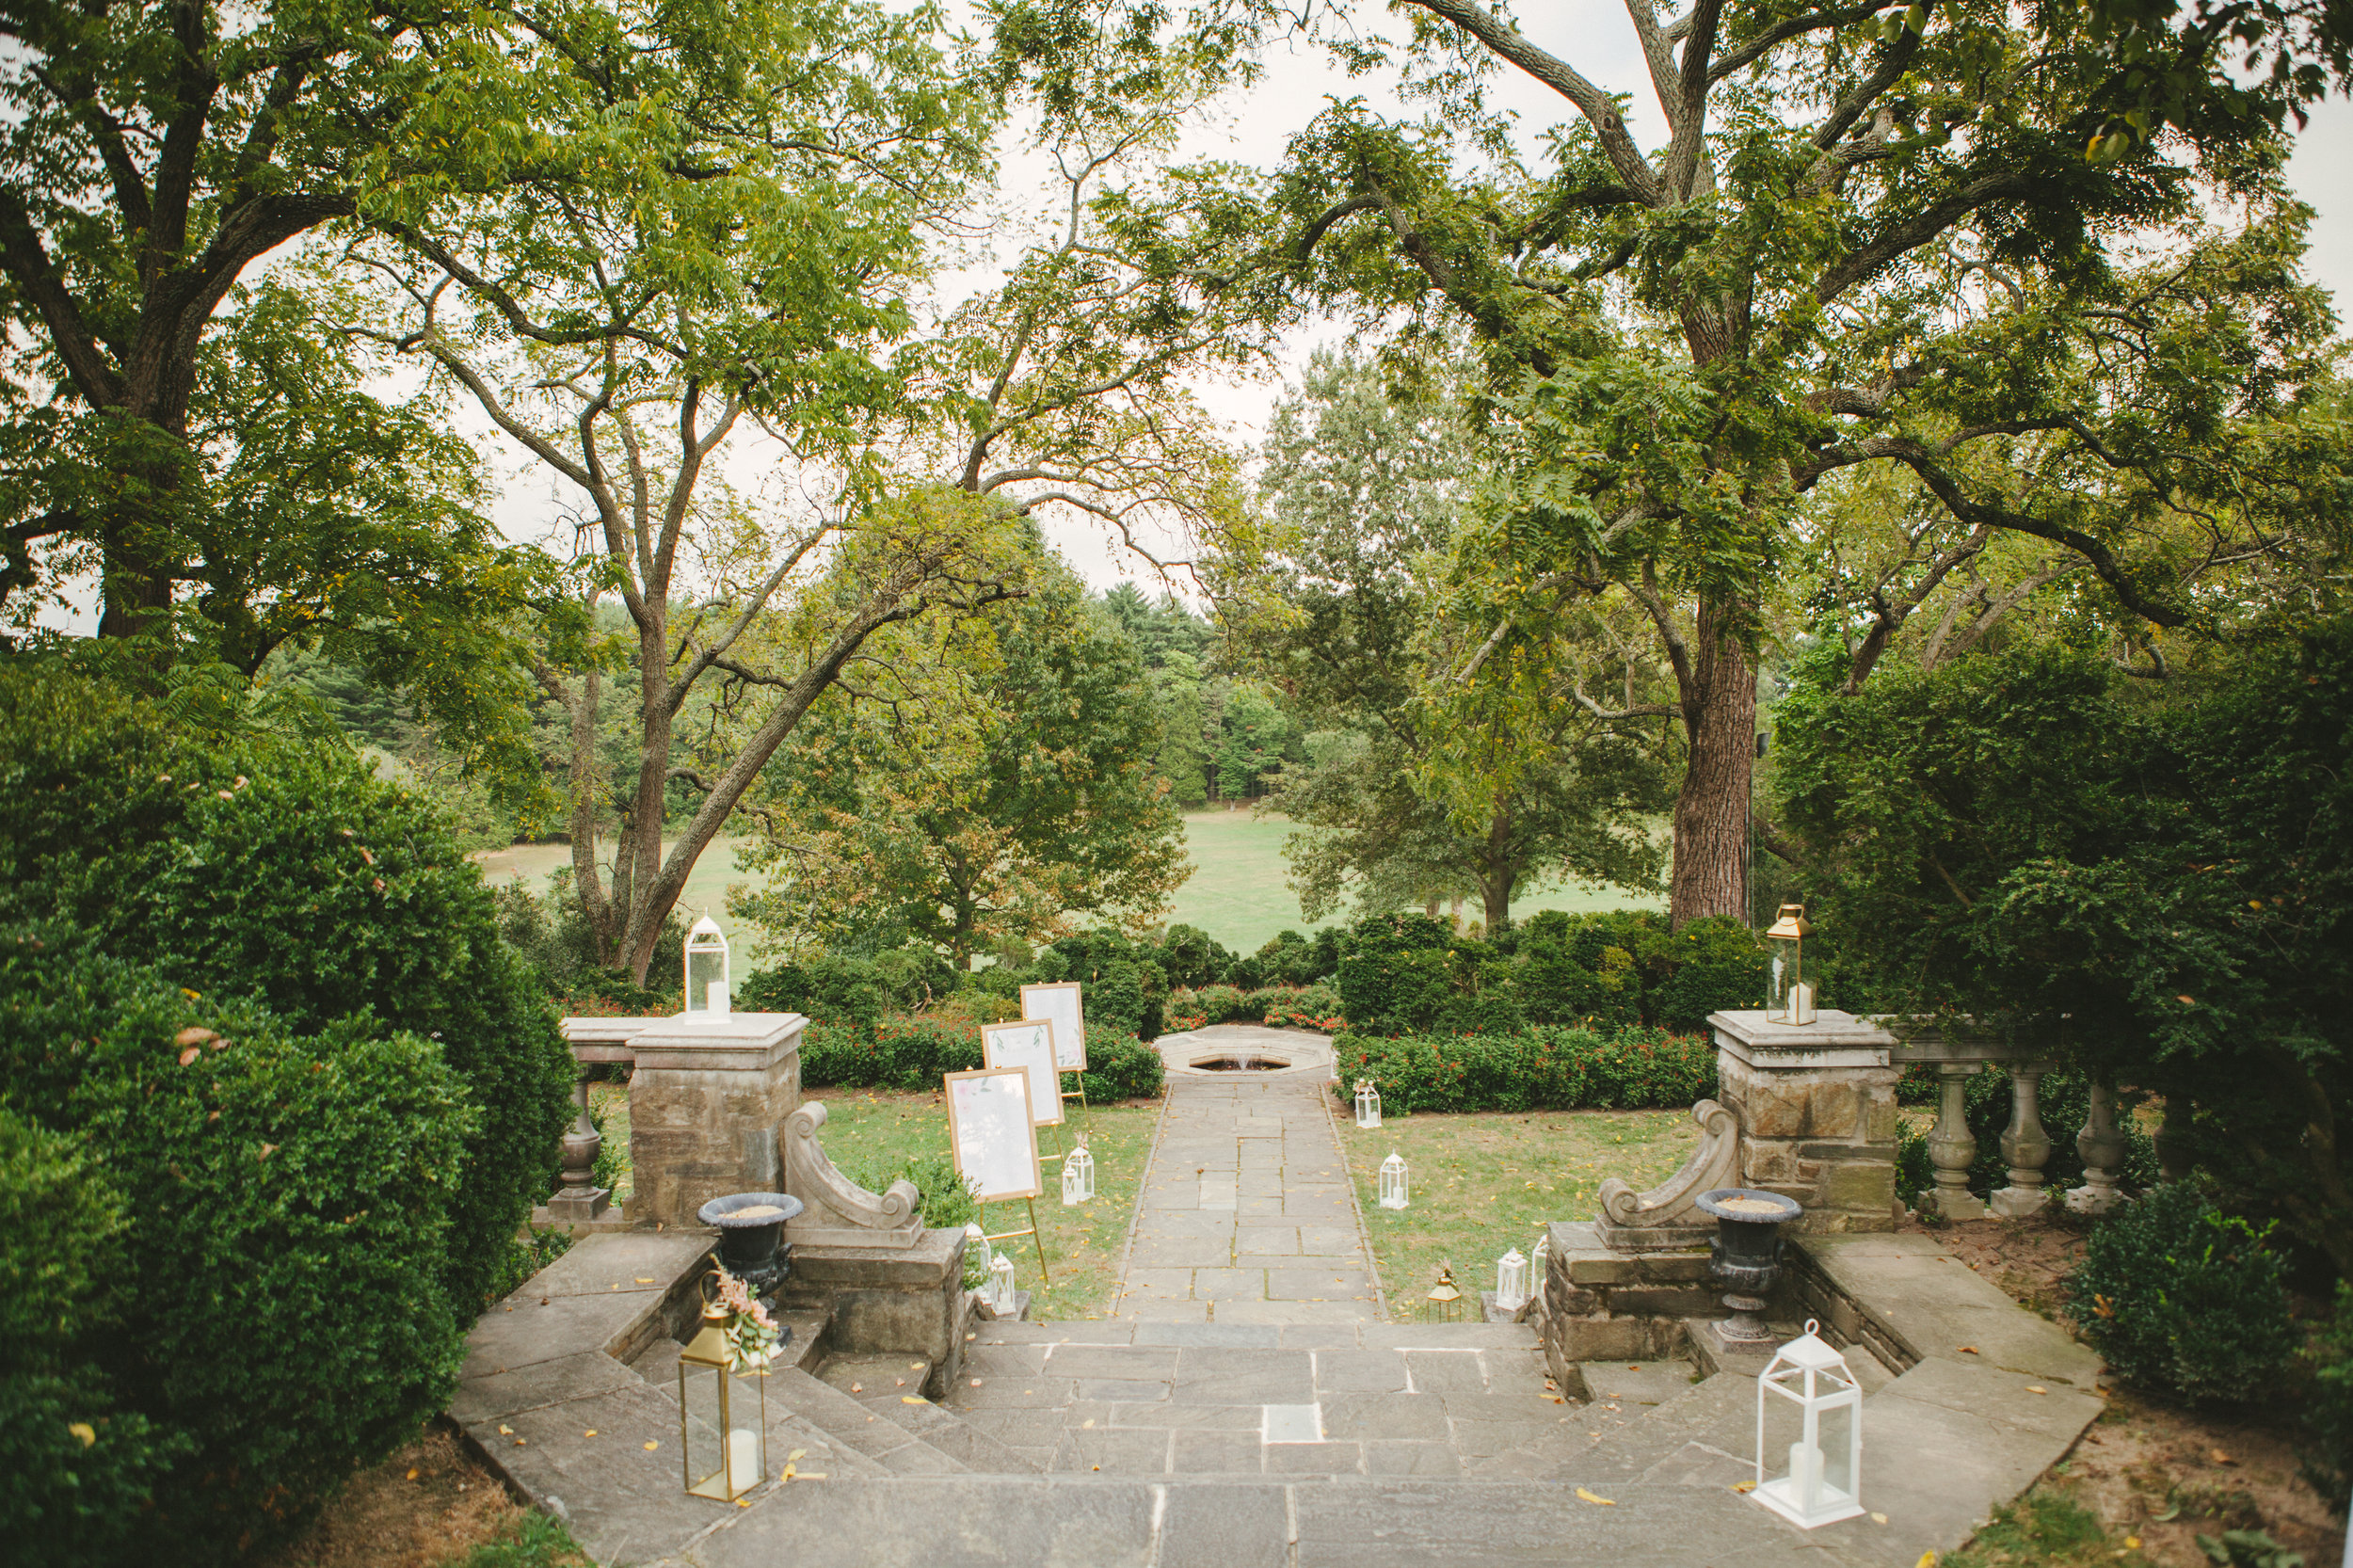 GLENVIEW MANSION WEDDING - INTIMATE WEDDING PHOTOGRAPHER - TWOTWENTY by CHI-CHI AGBIM-22.jpg